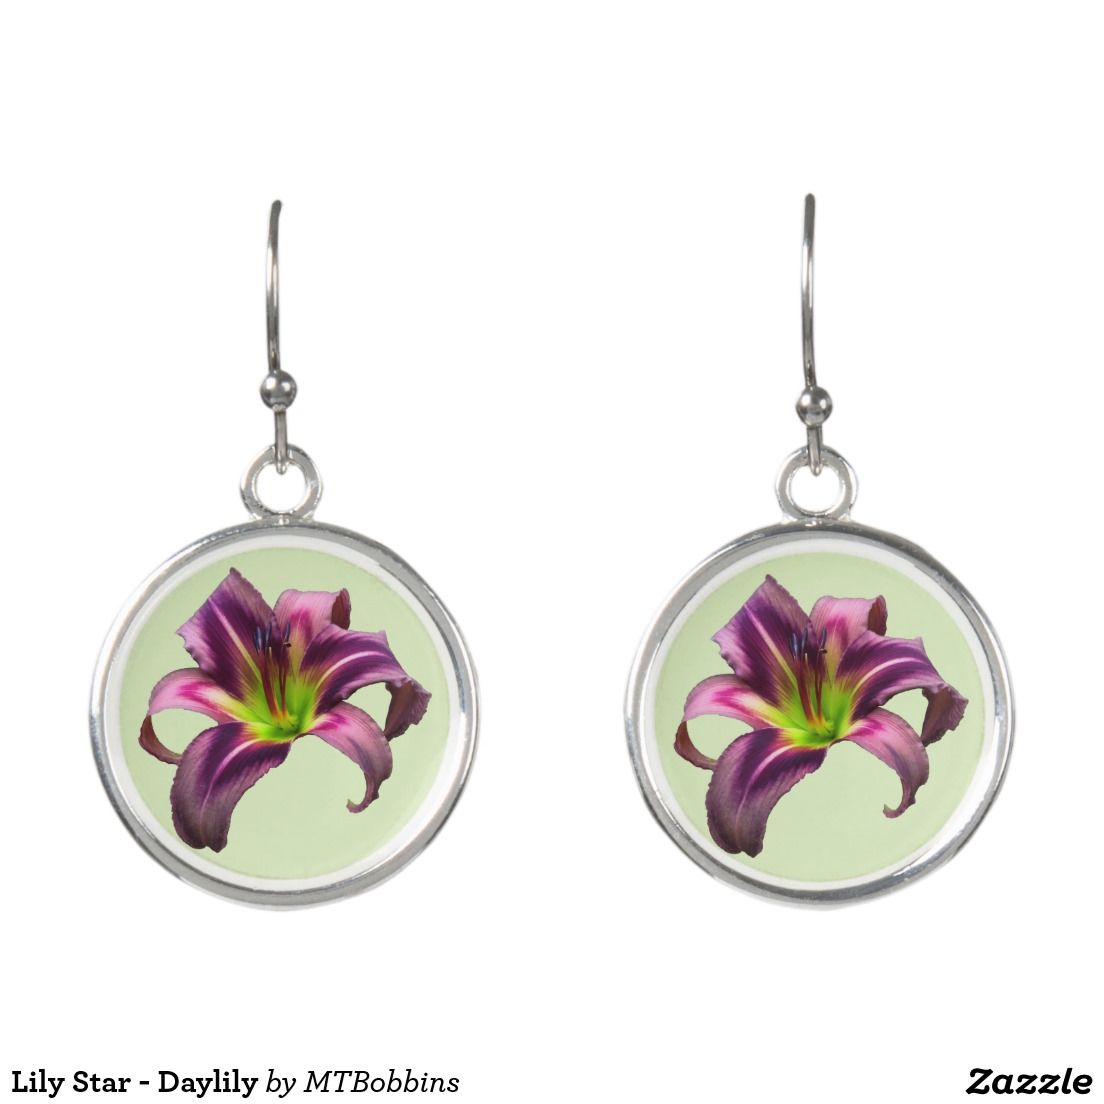 Lily Star - Daylily Earrings